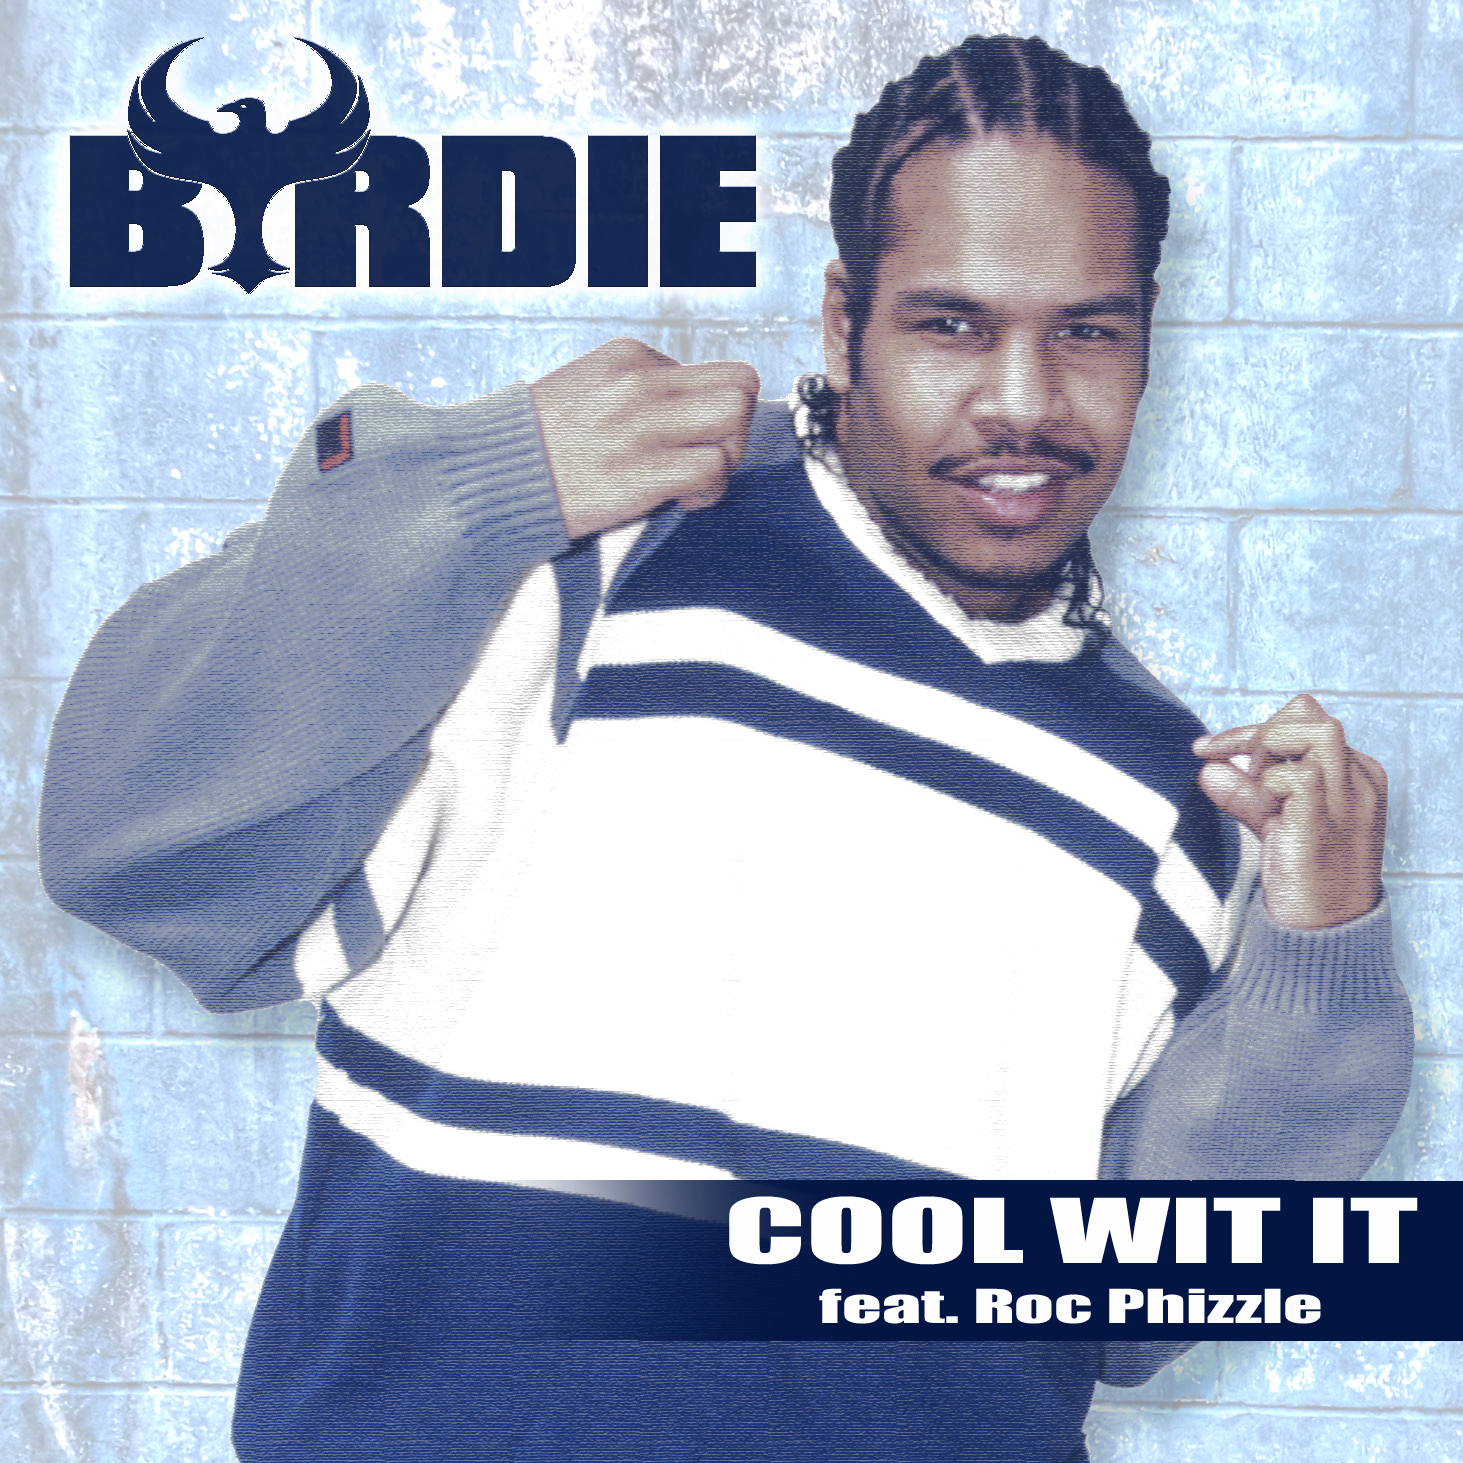 Byrdie - Cool Wit It feat. Roc Phizzle